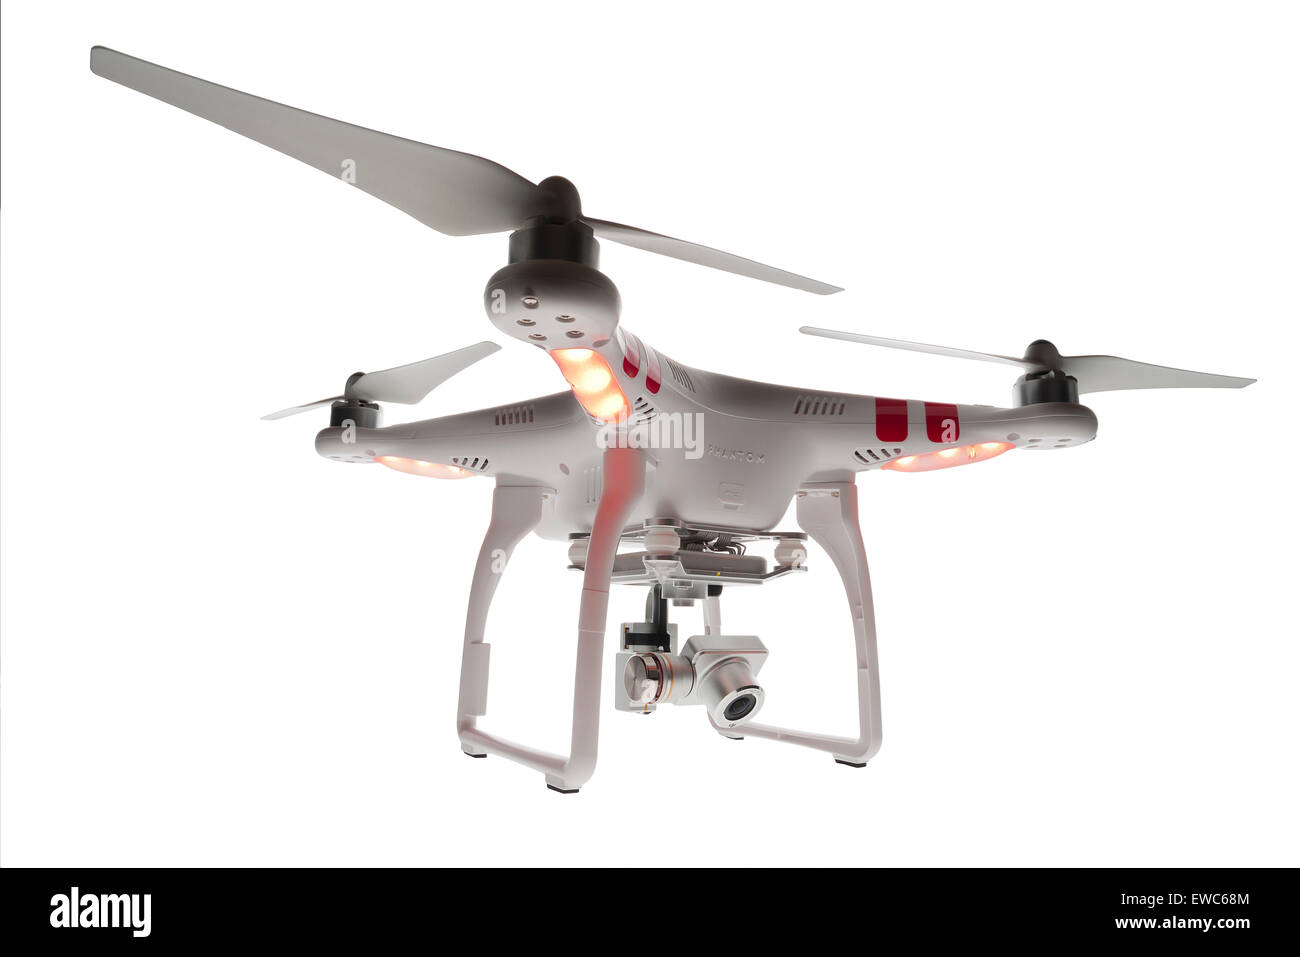 DJI Phantom drone. Aerial video capture. Flying machine. High viewpoint, unmanned aircraft. Remote controlled vertical - Stock Image